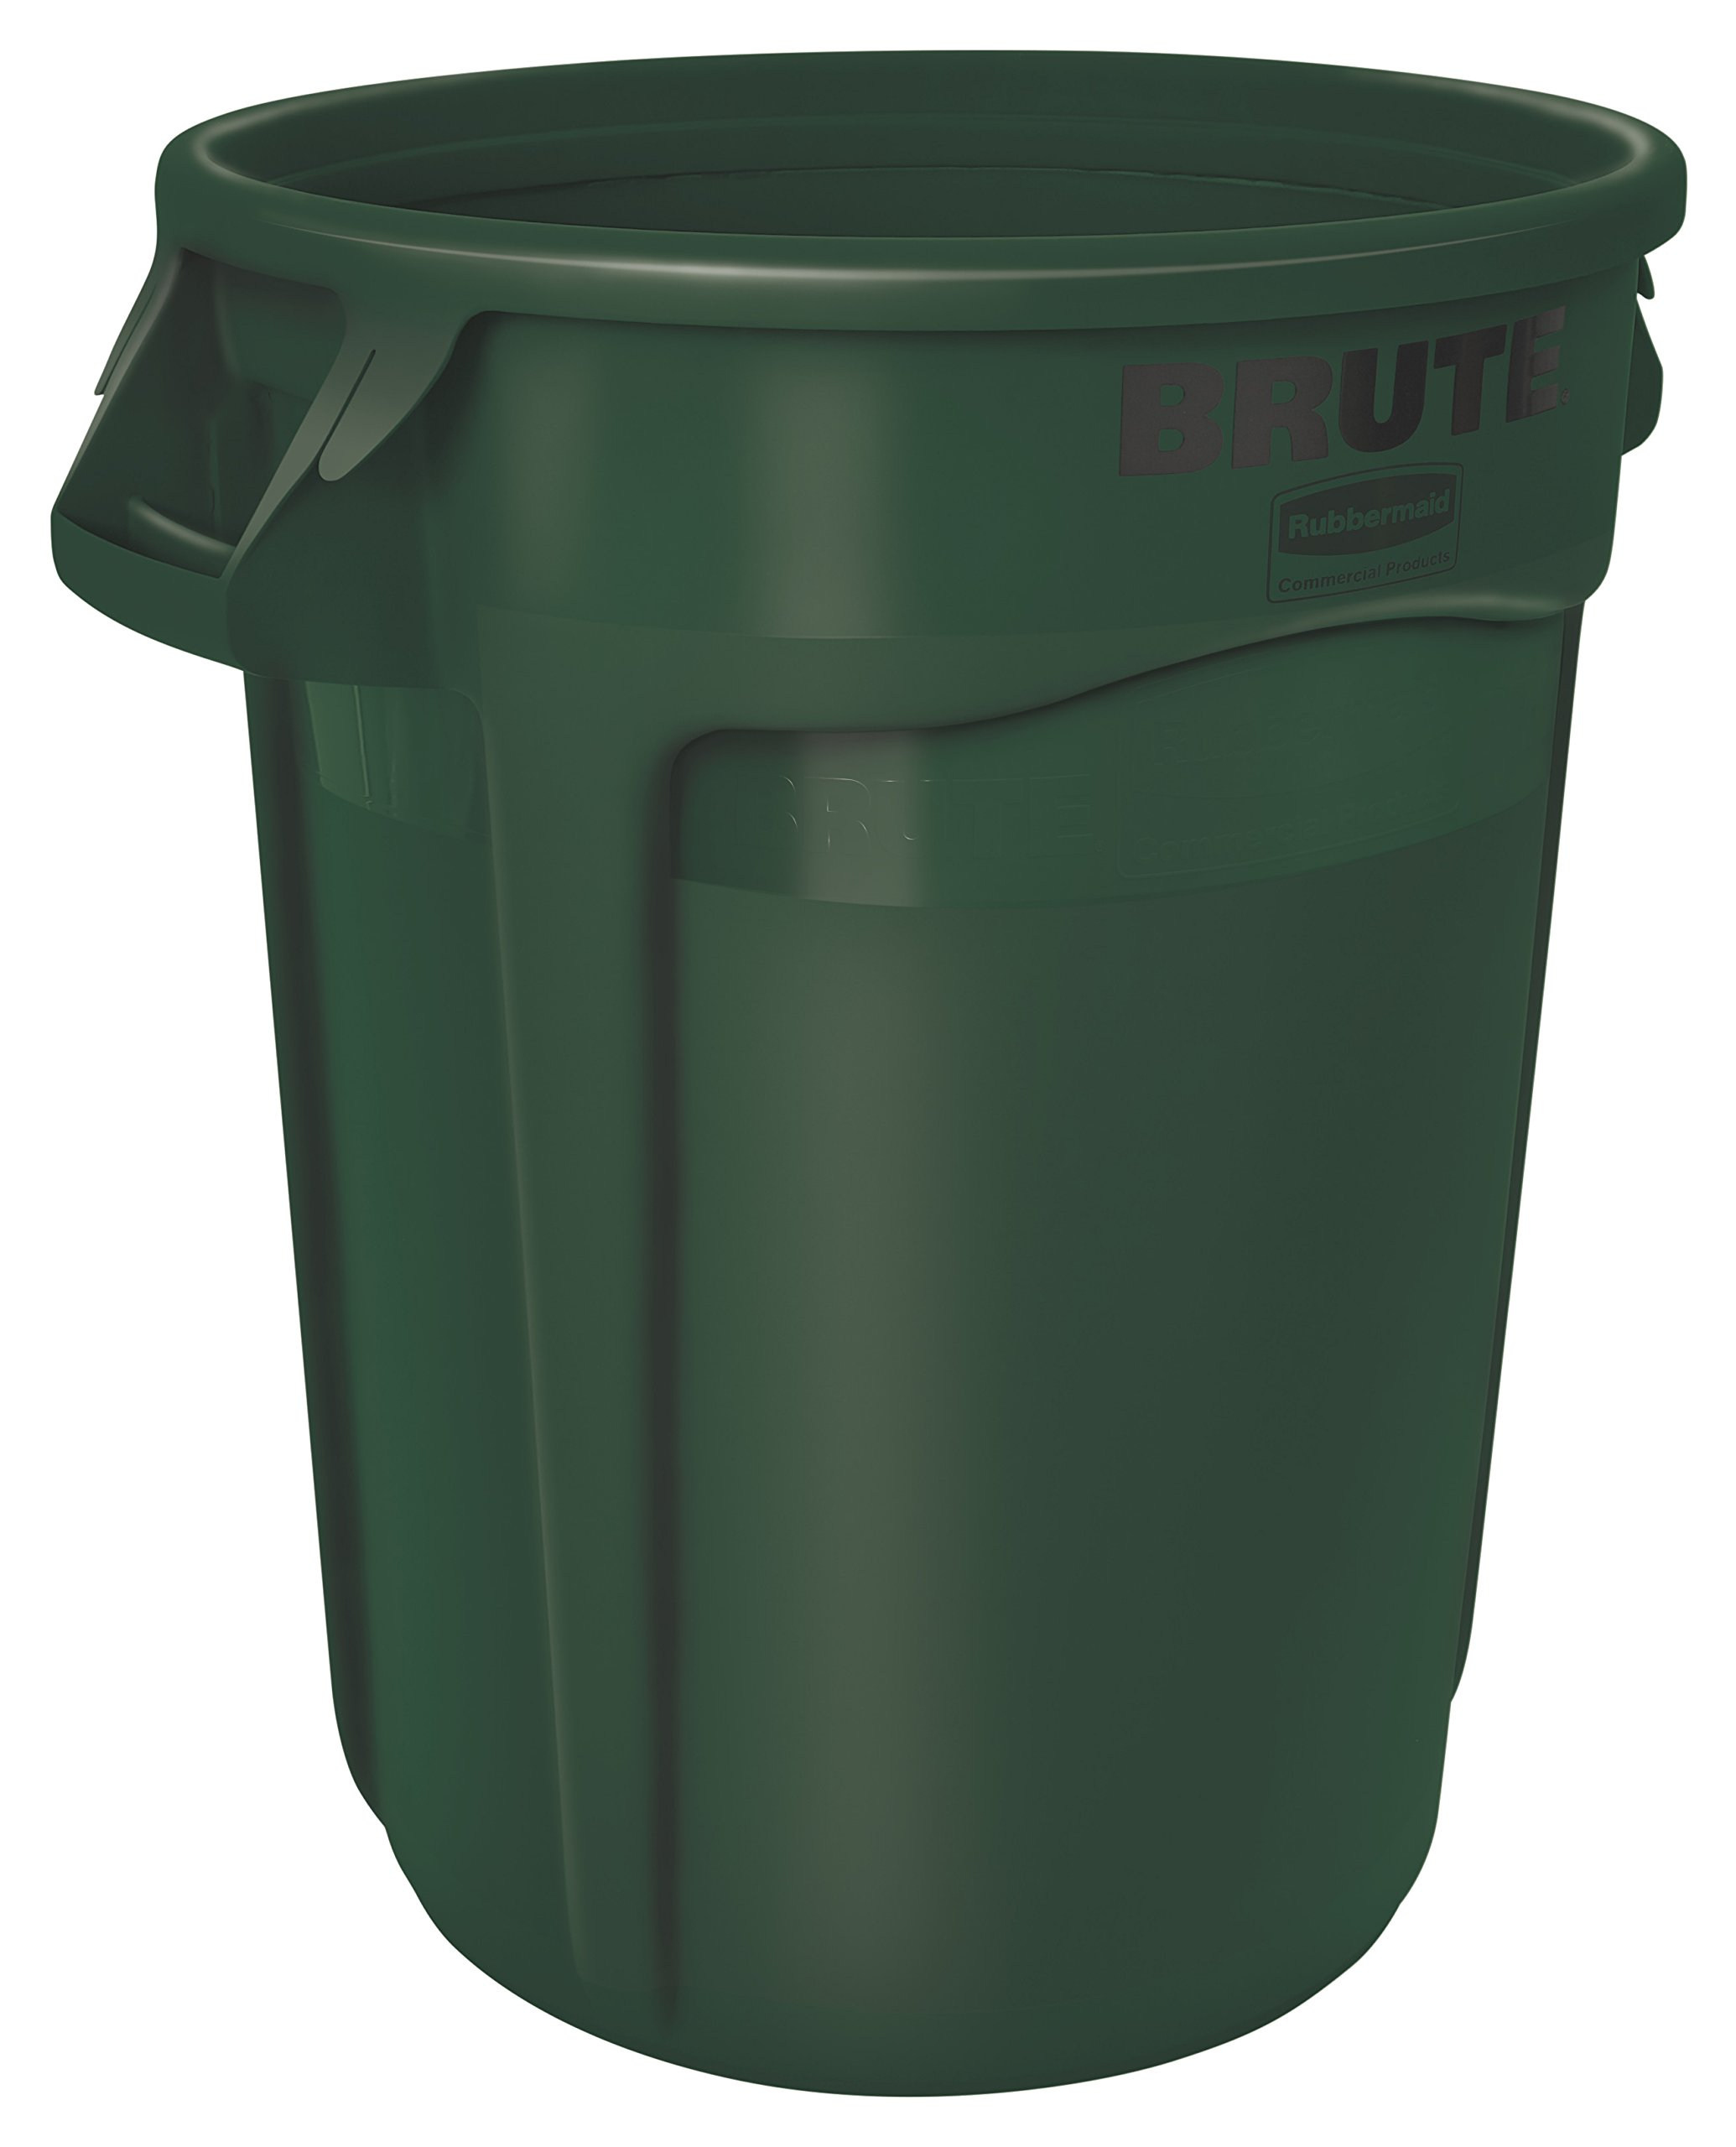 Rubbermaid Commercial BRUTE Heavy-Duty Round Waste/Utility Container with Venting Channels, 10-gallon, Green (FG261000DGRN)